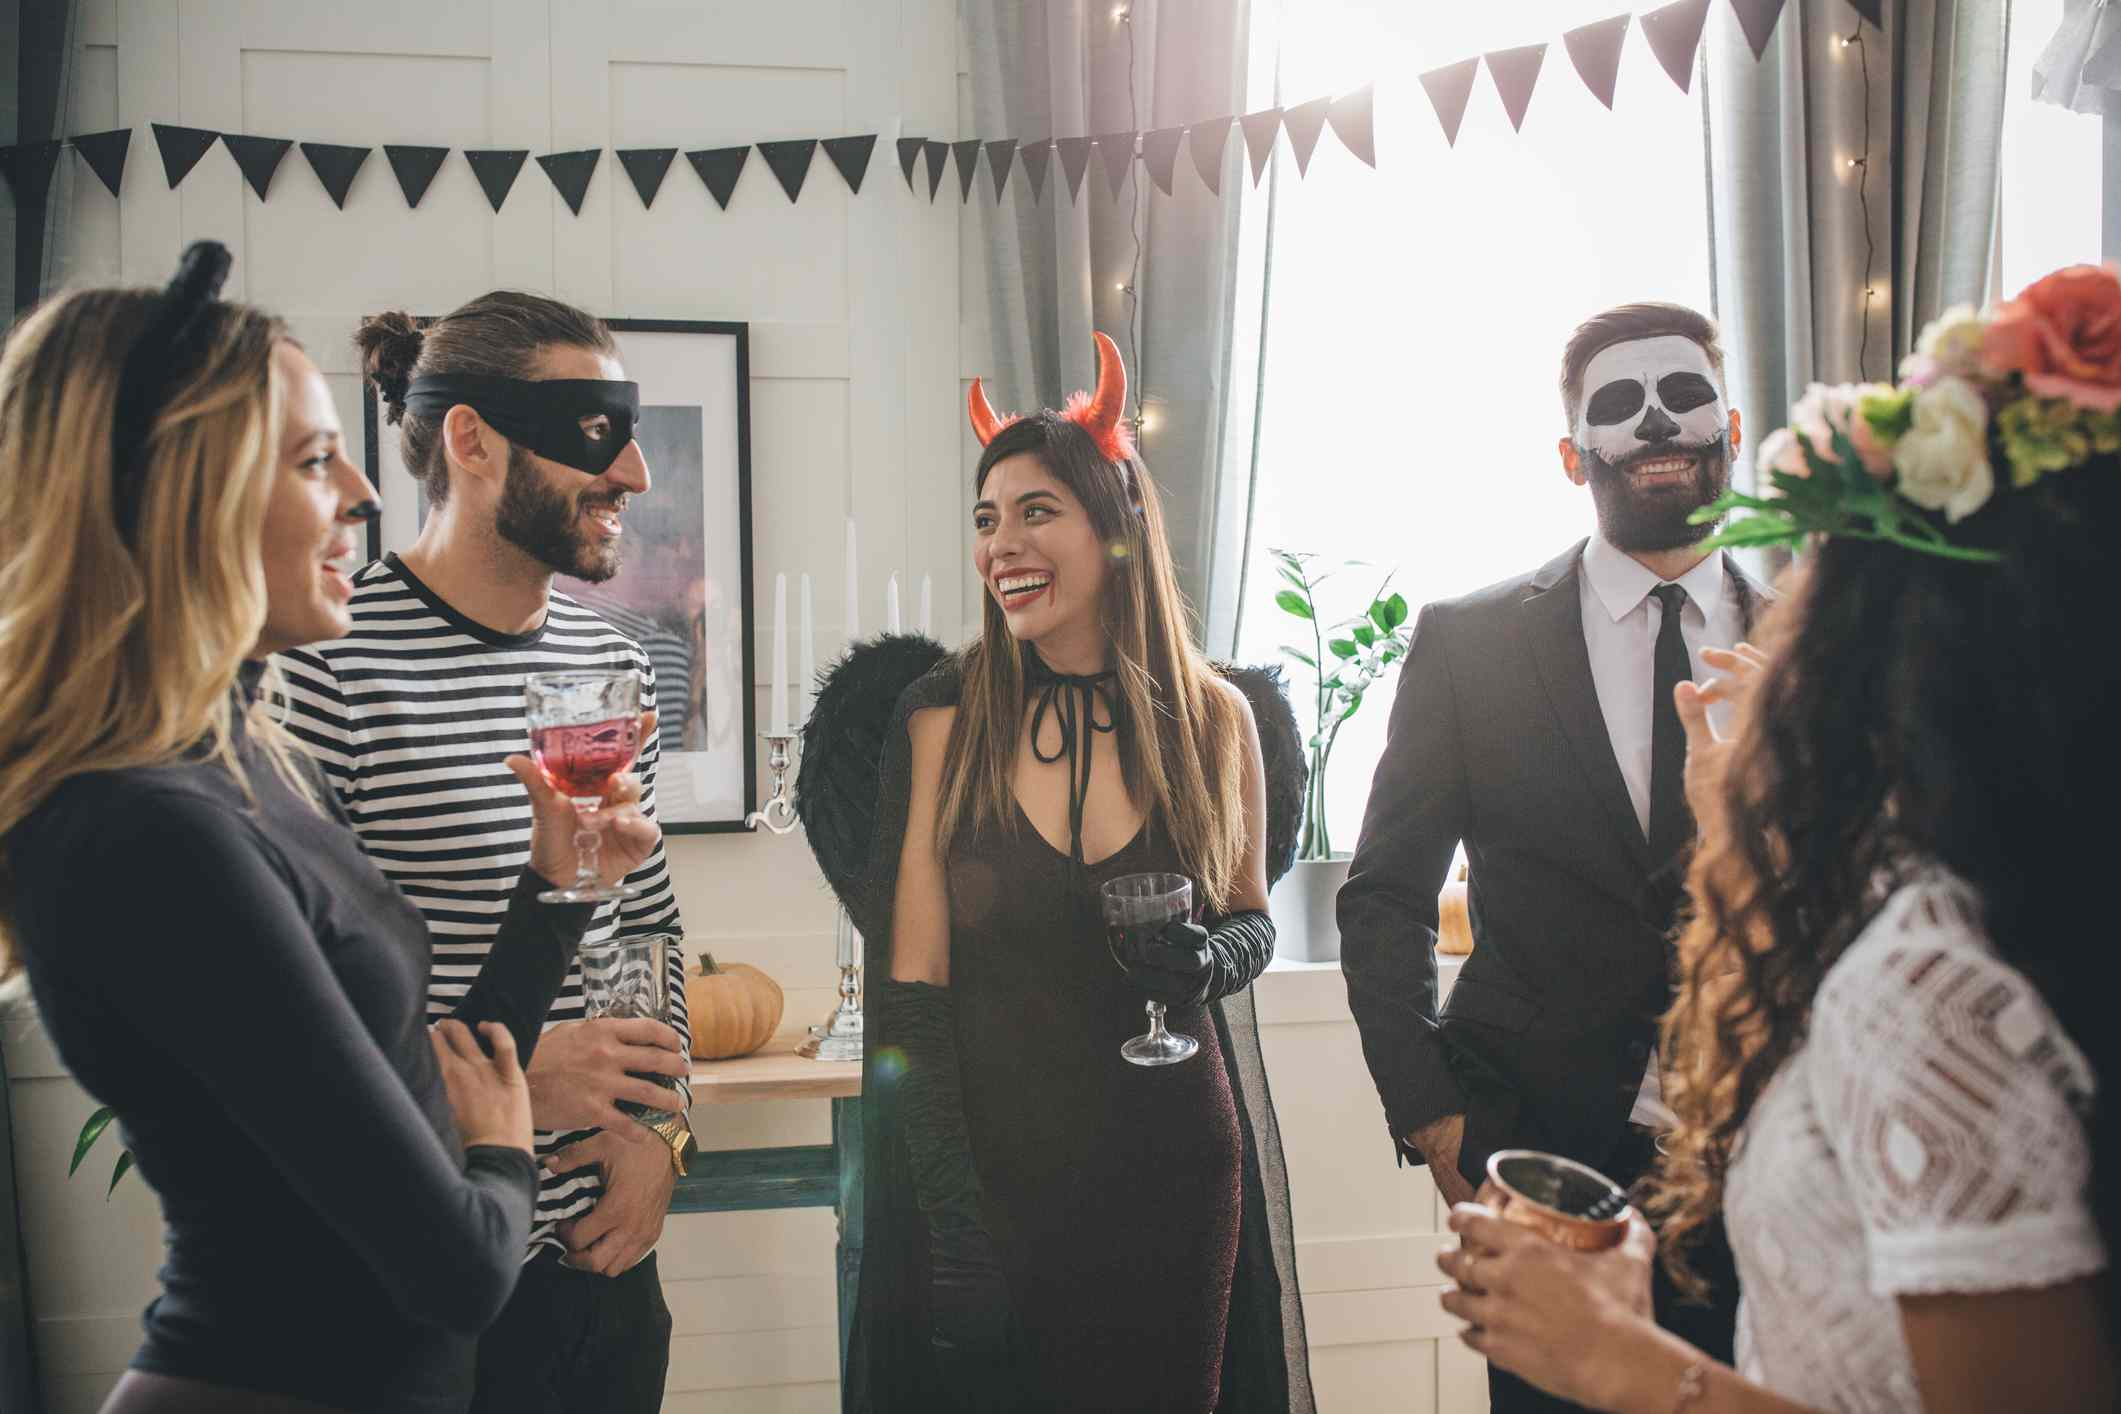 Halloween party guests